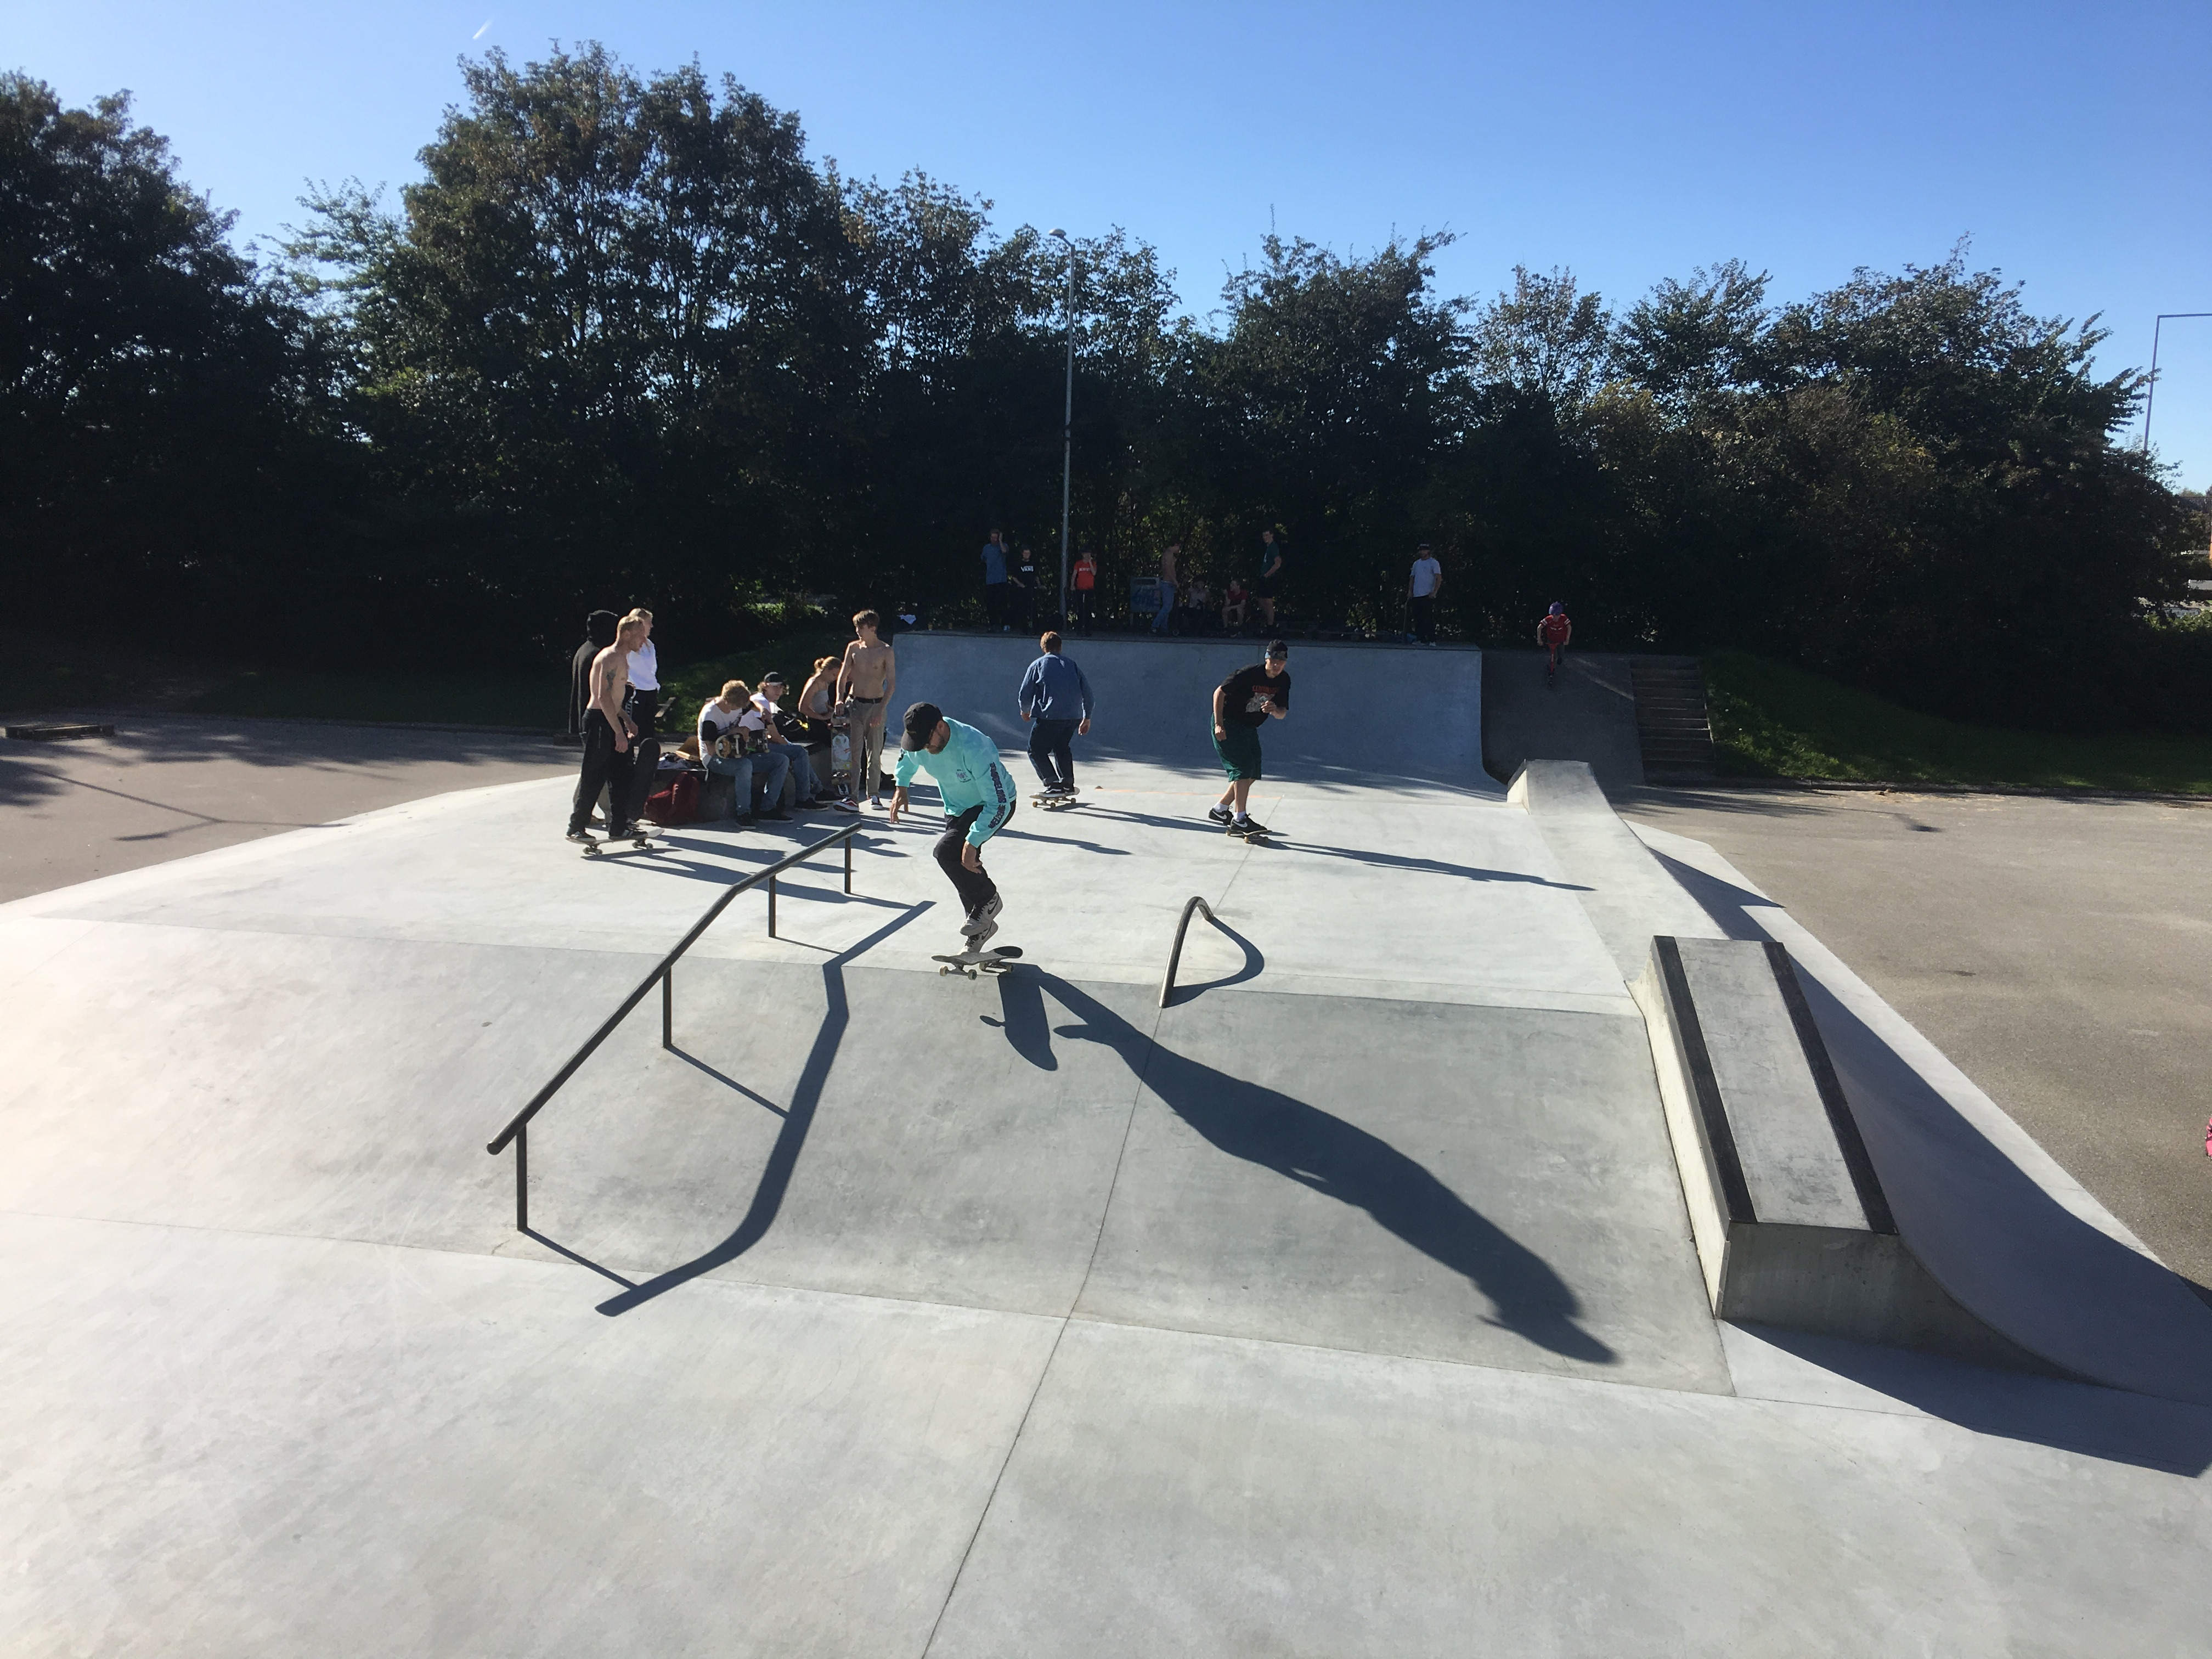 Struer skatepark with locals  and hanging outs